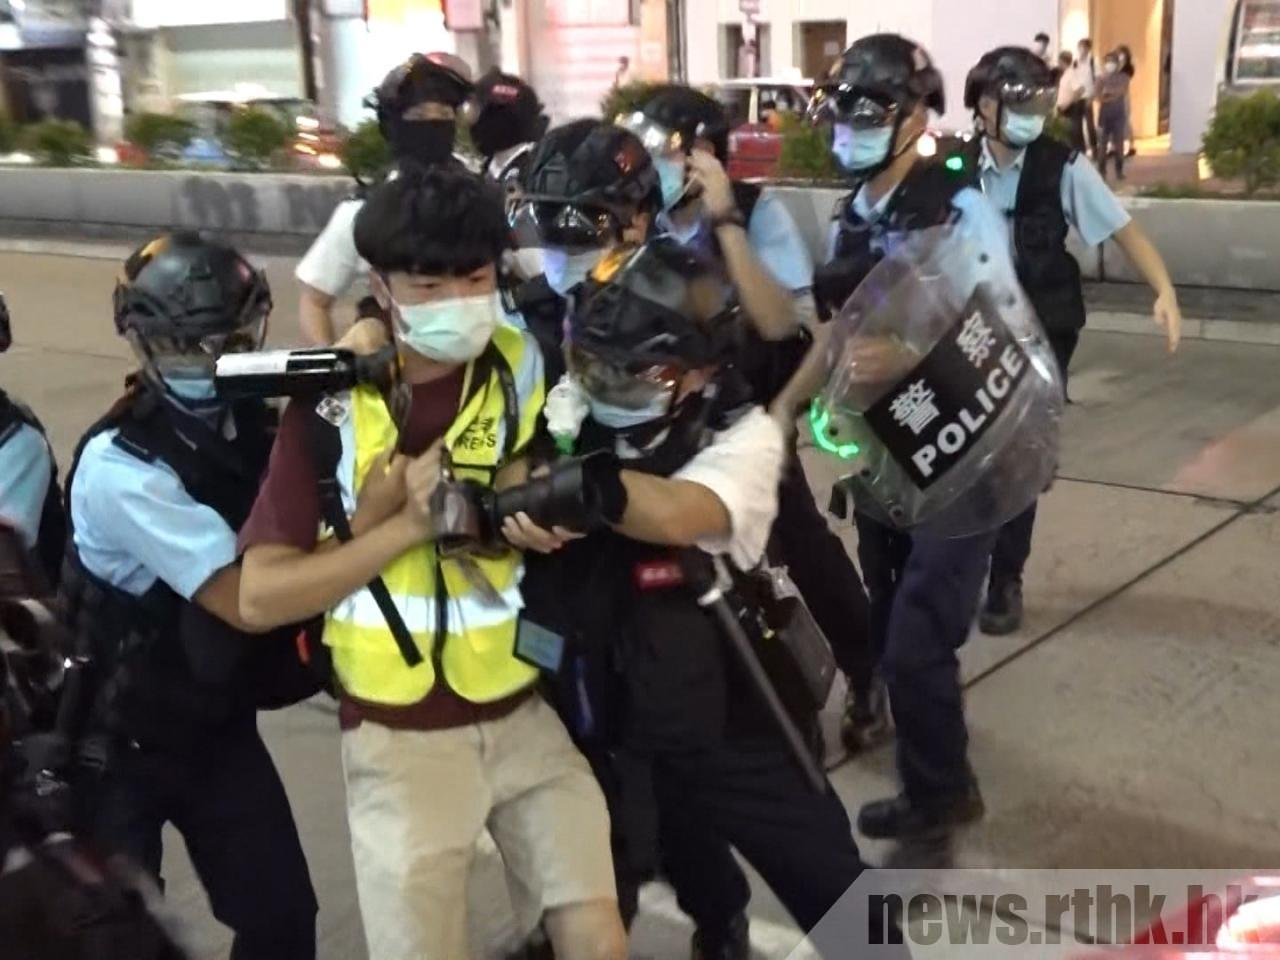 HKJA principles out allure over police treatment of media